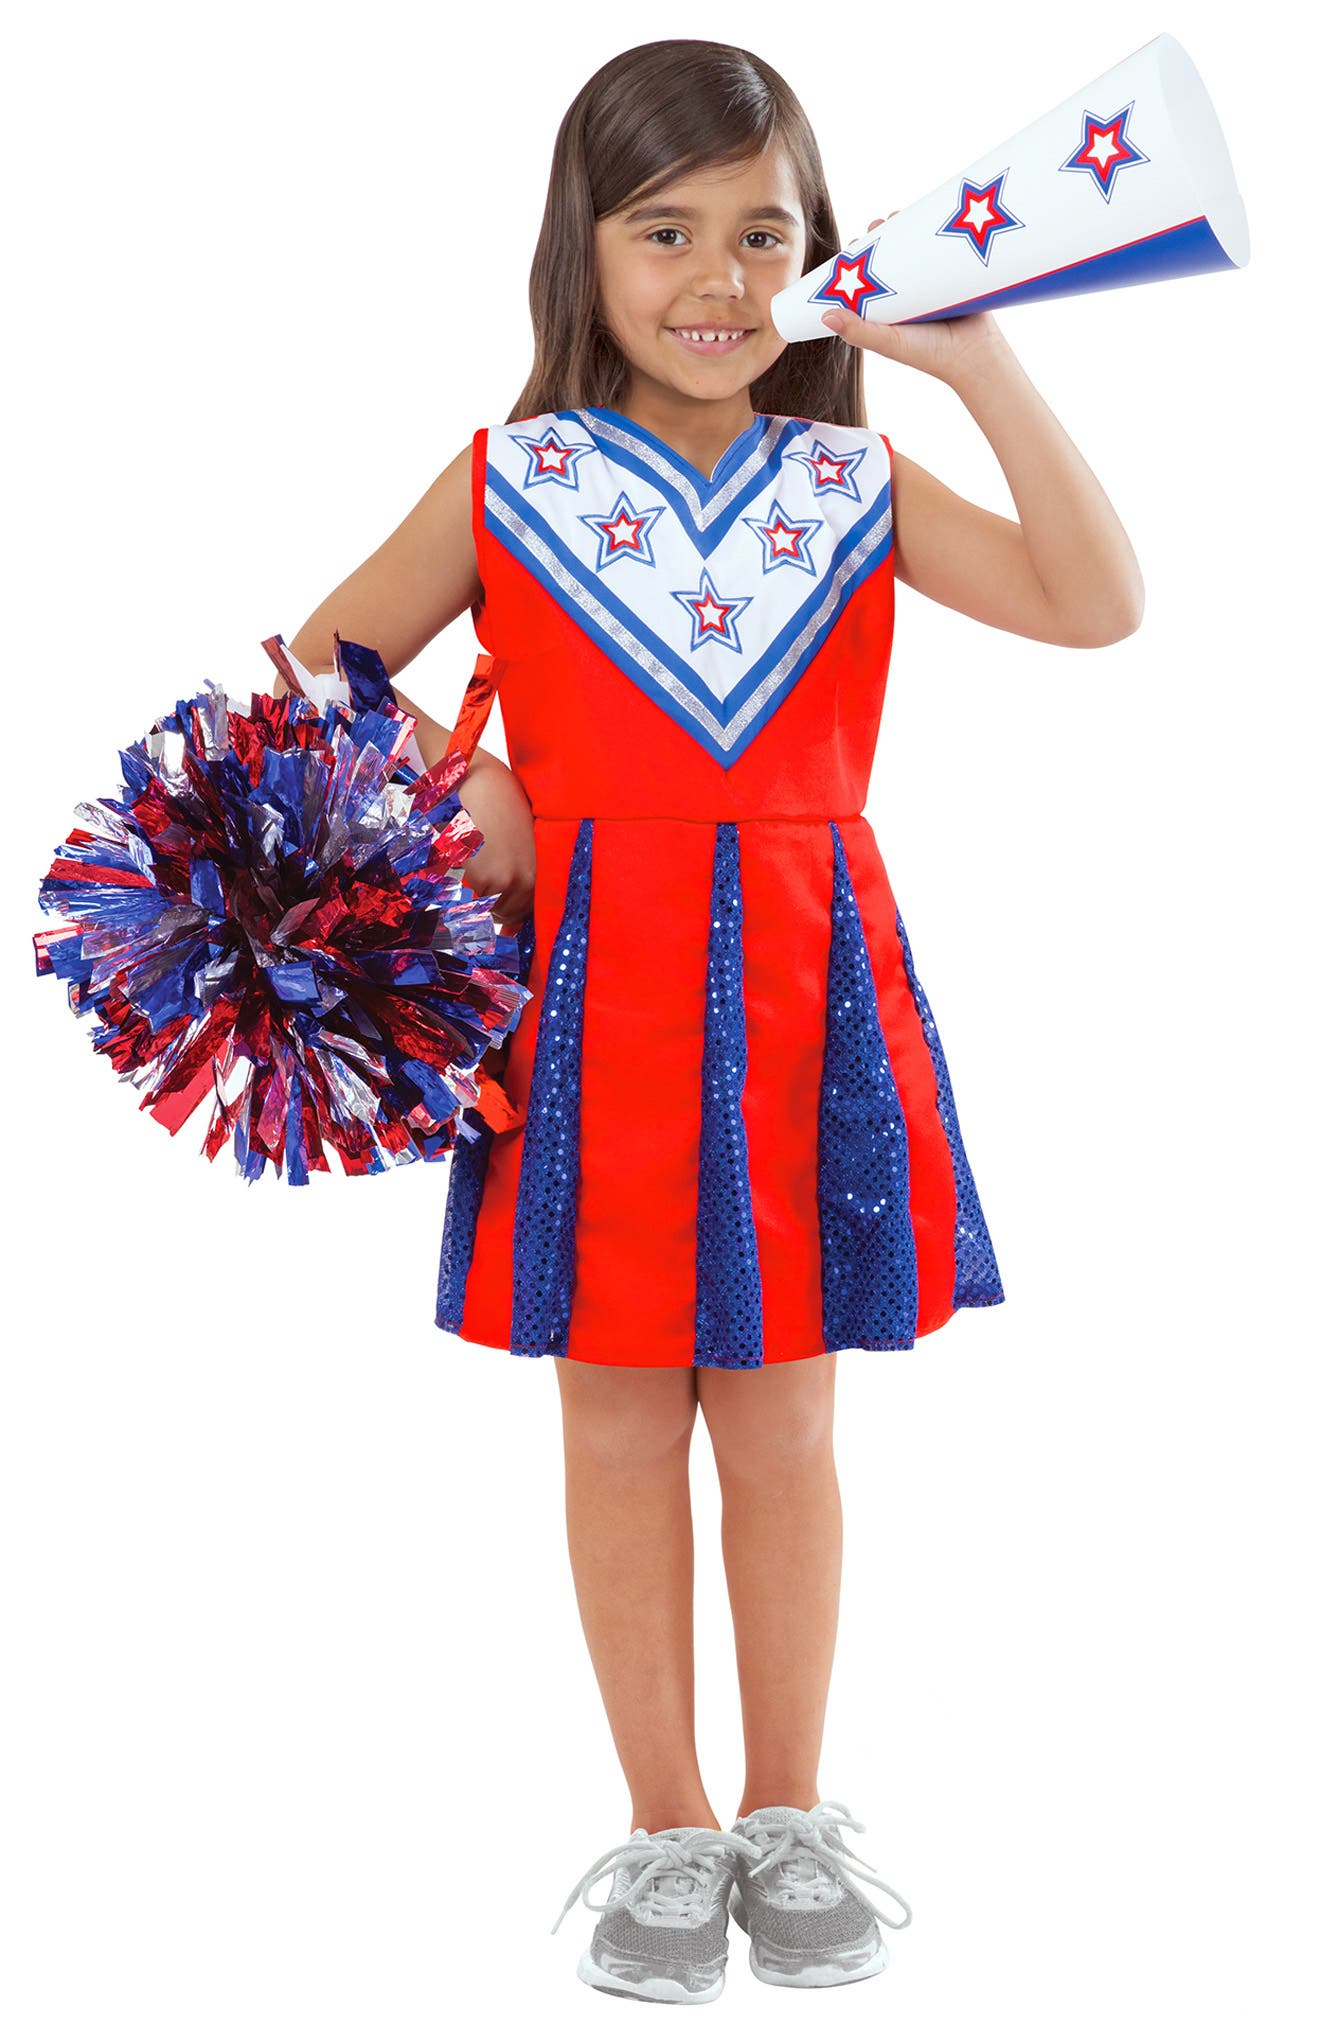 Cheerleader Role Play Set,                         Main,                         color, 960